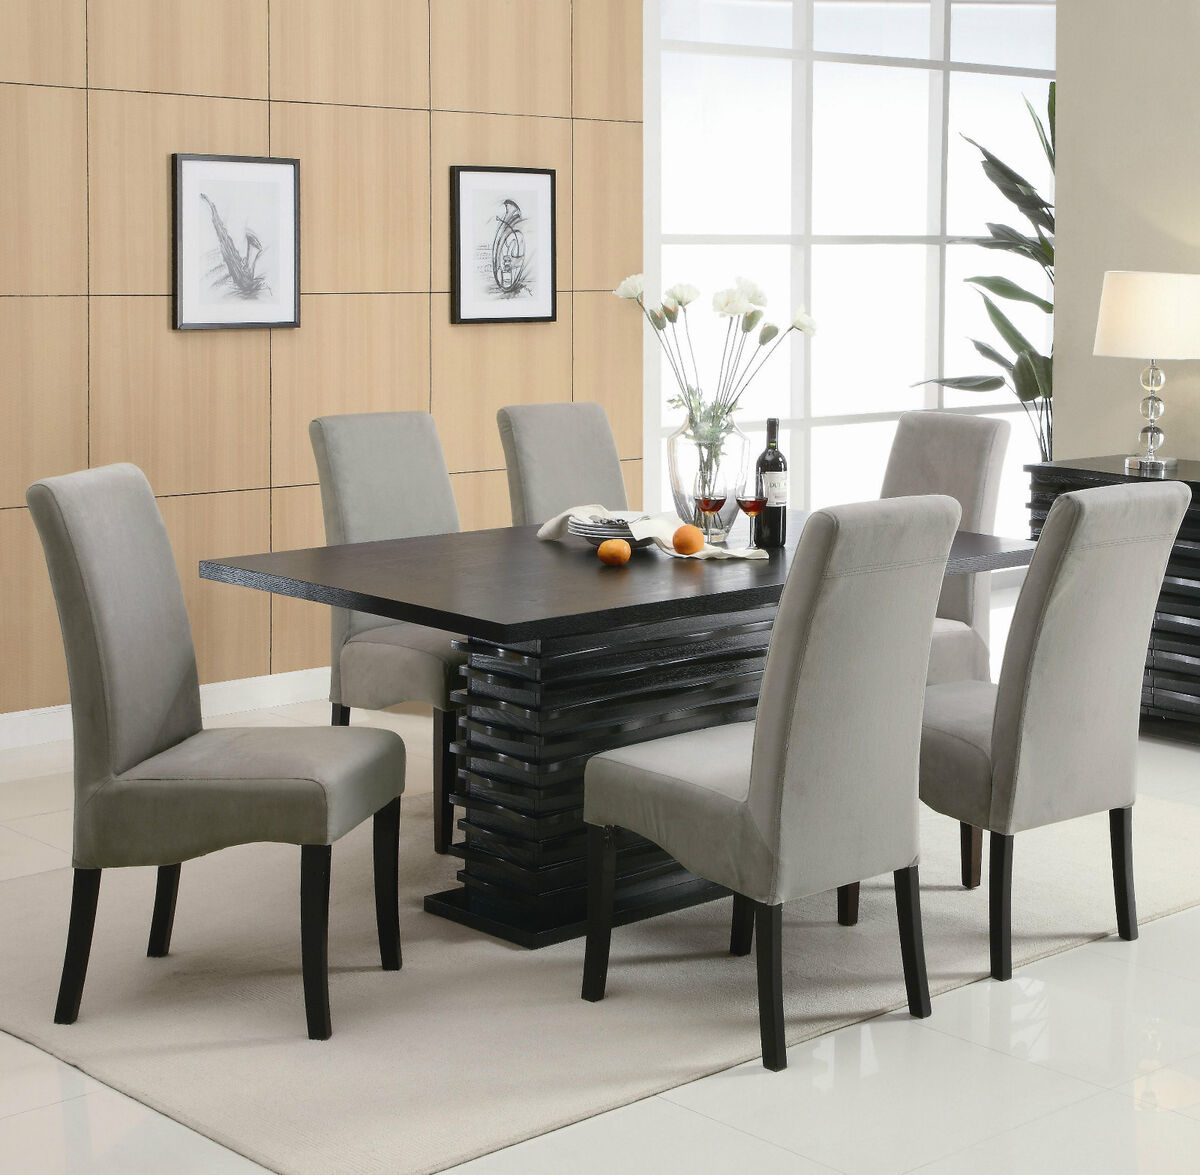 Dining table furniture contemporary dining table chairs for Contemporary dining room pictures